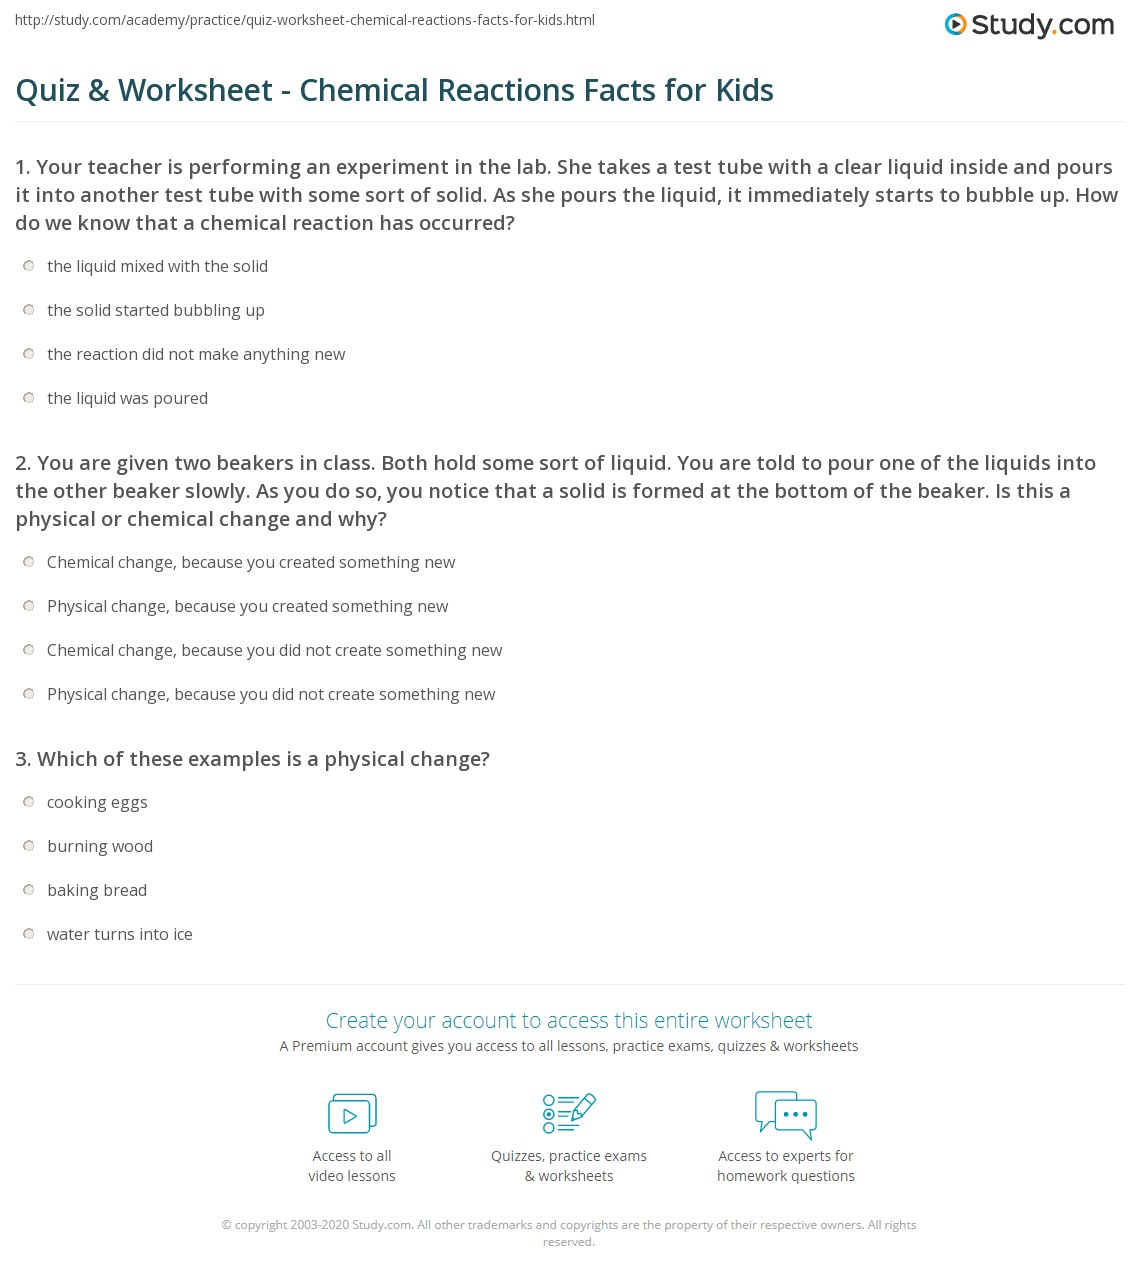 worksheet Ks3 Chemical Reactions Worksheet quiz worksheet chemical reactions facts for kids study com 1 you are given two beakers in class both hold some sort of liquid told to pour one the liquids into other beaker sl